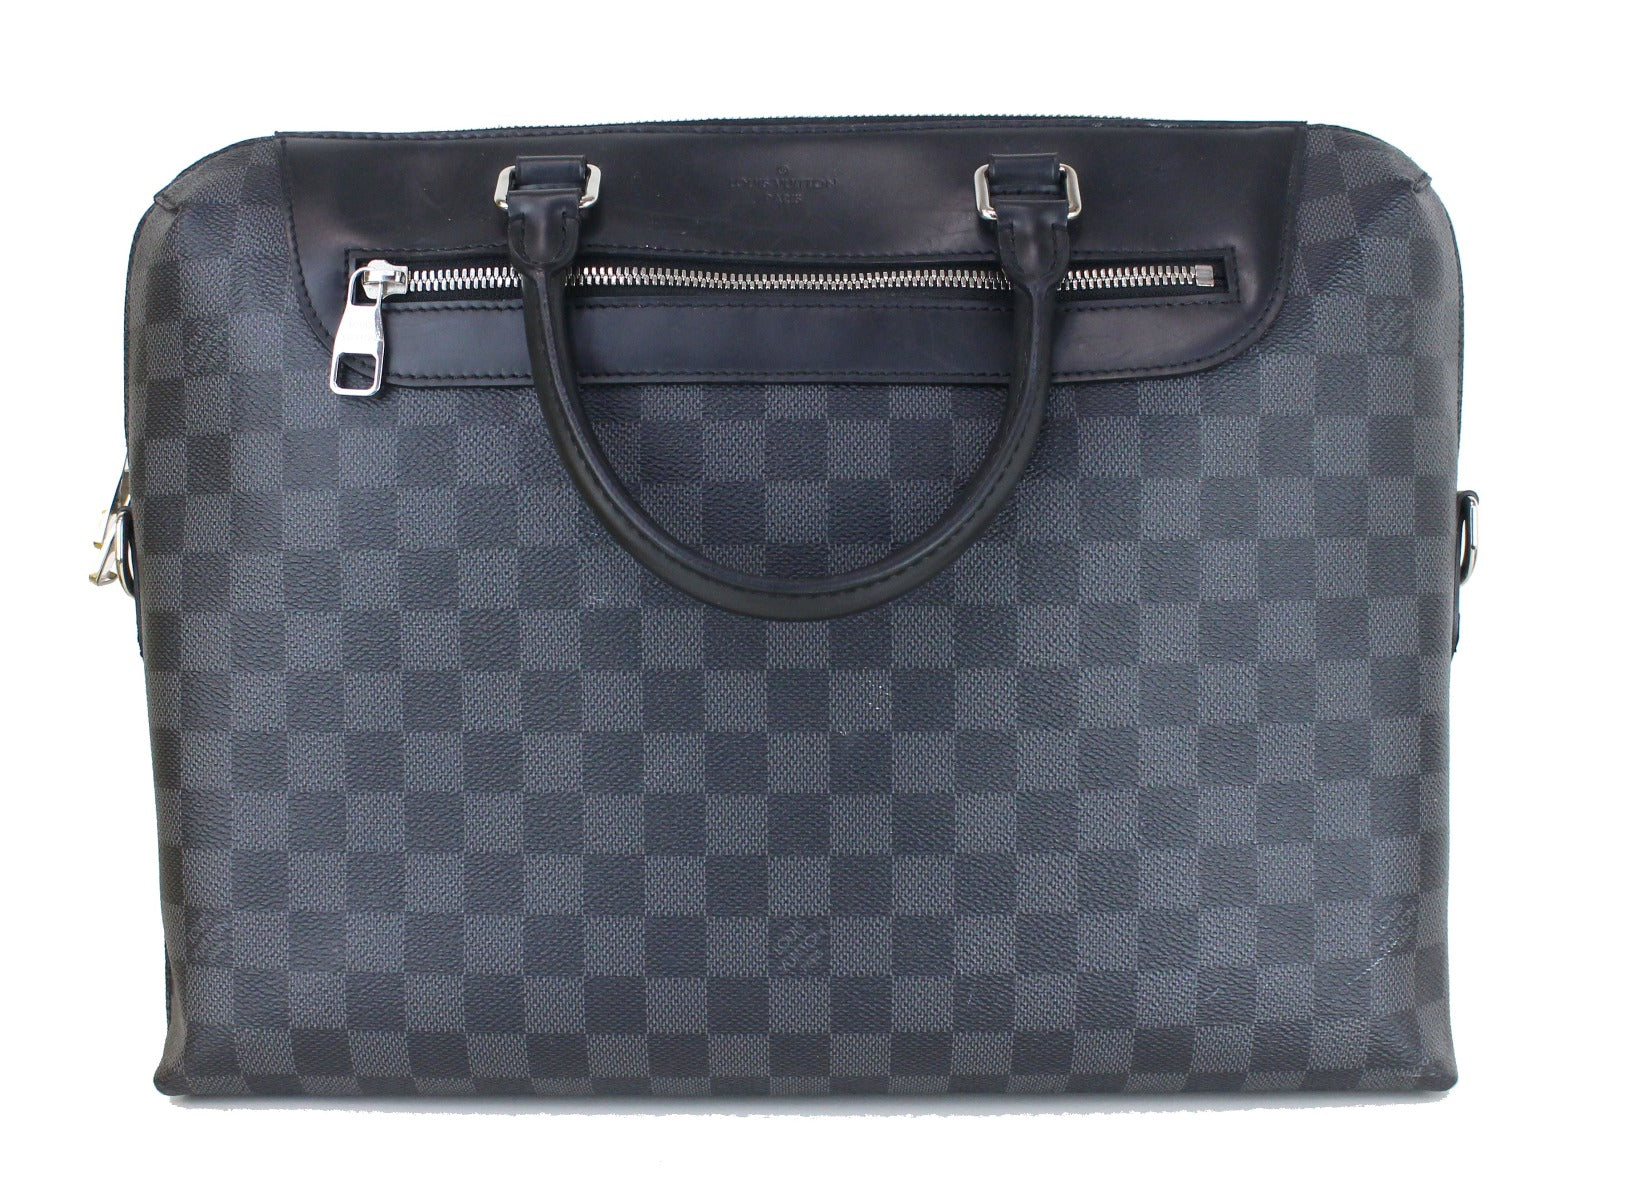 Louis Vuitton DOCUMENTS Bag